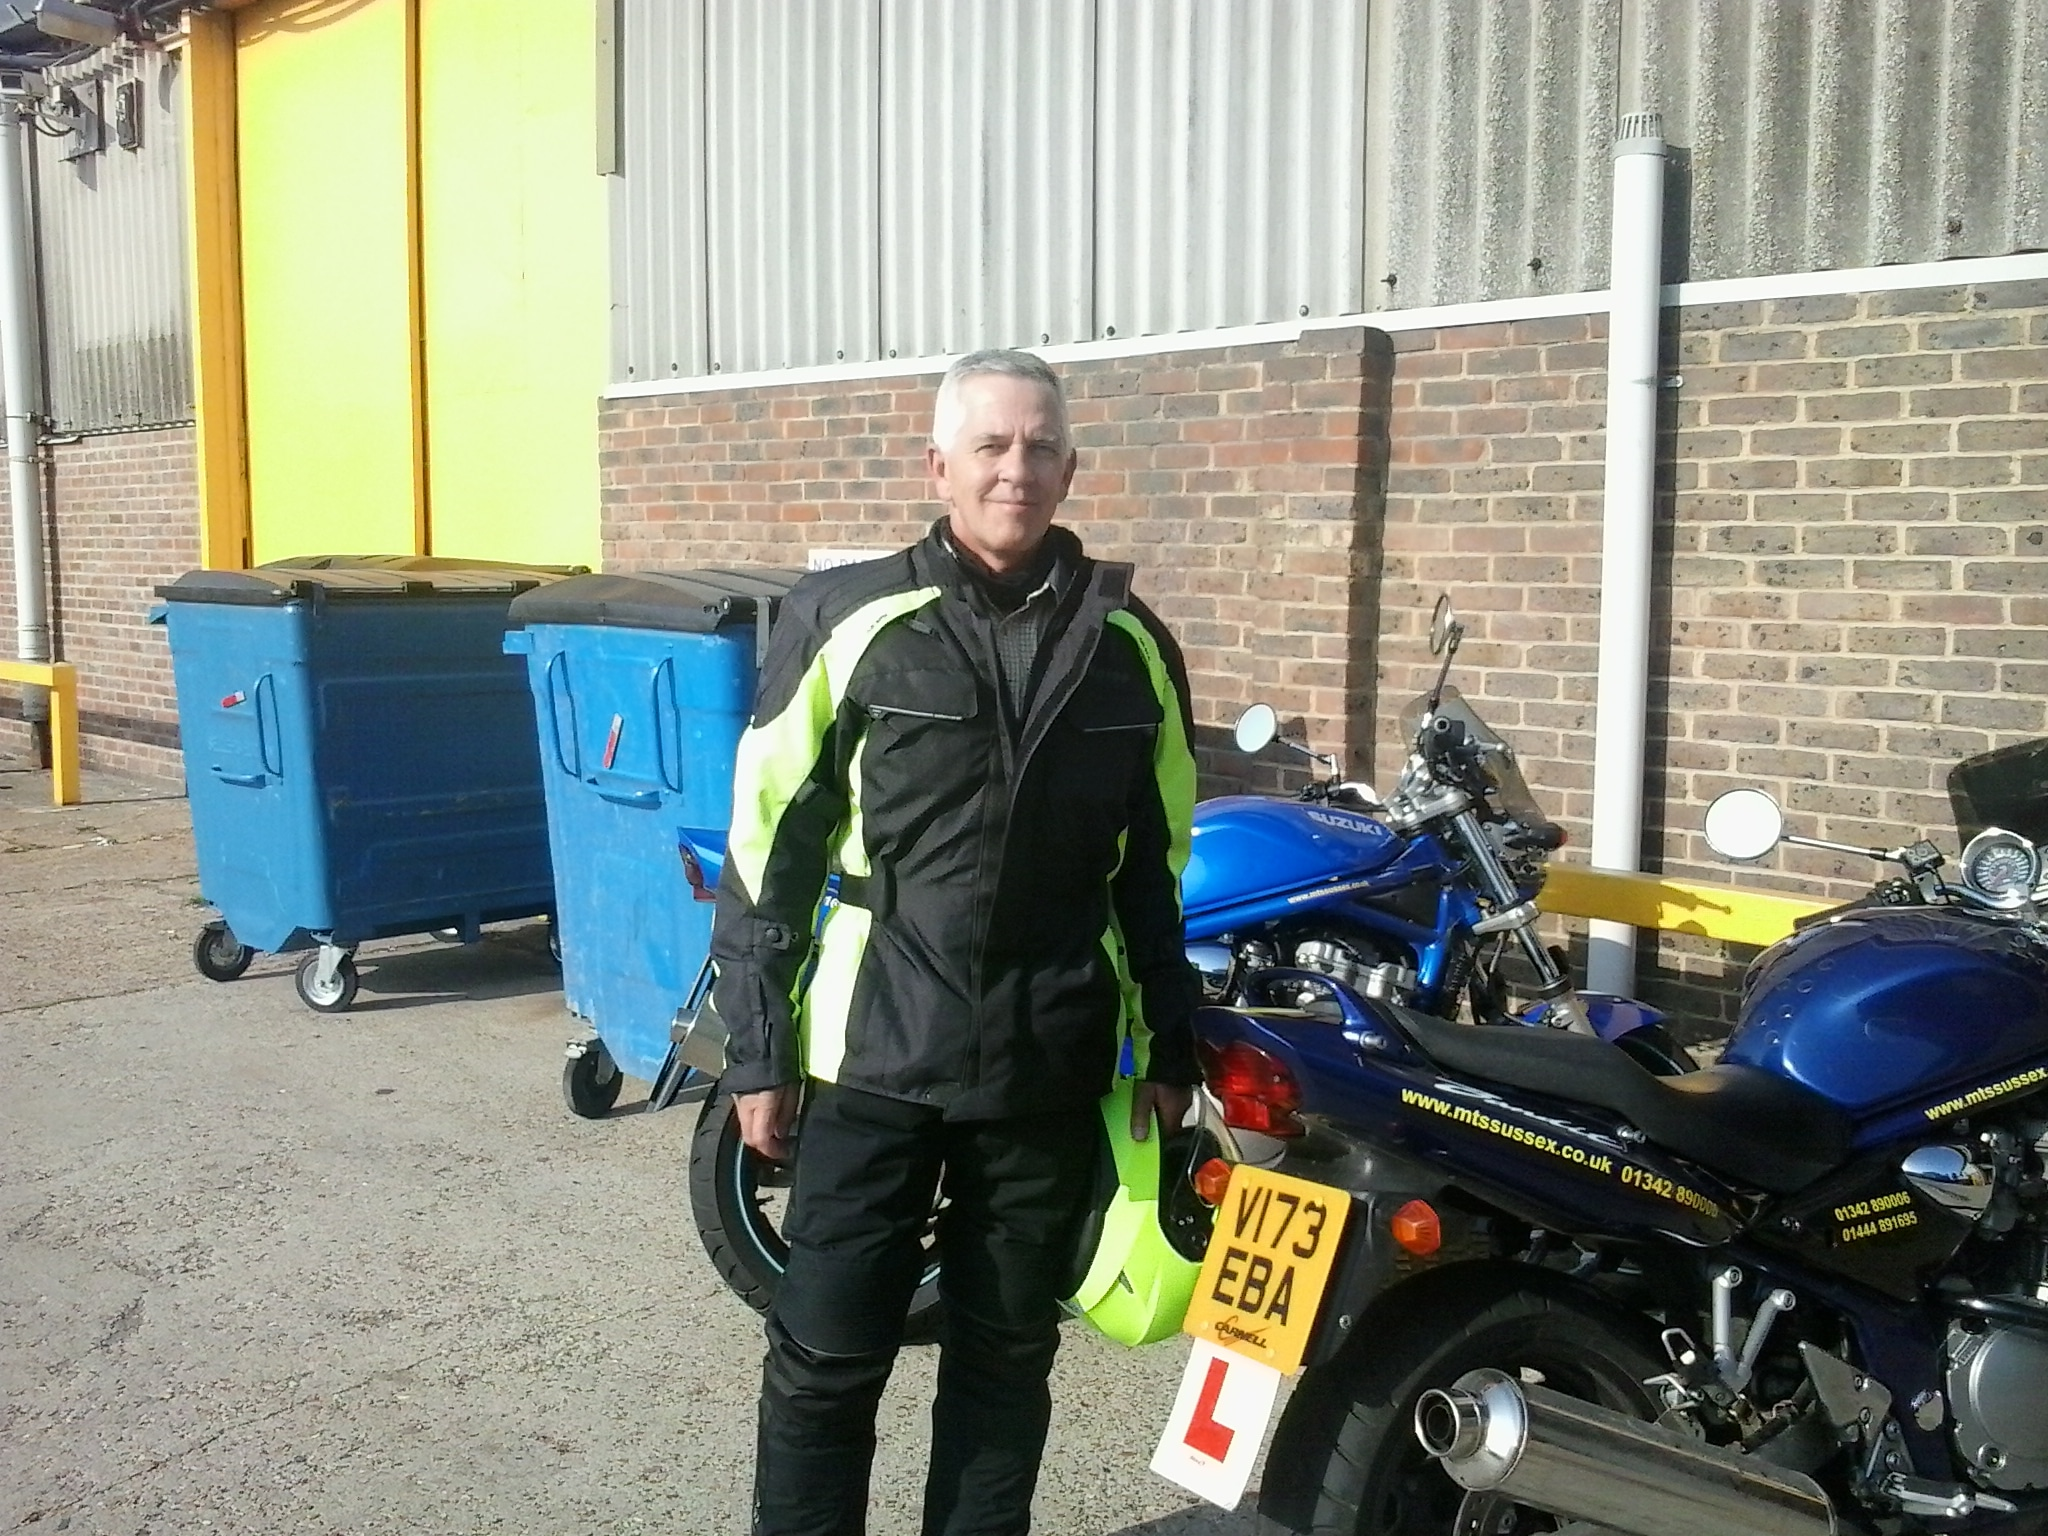 From taster session to CBT to DAS pass for Neil!